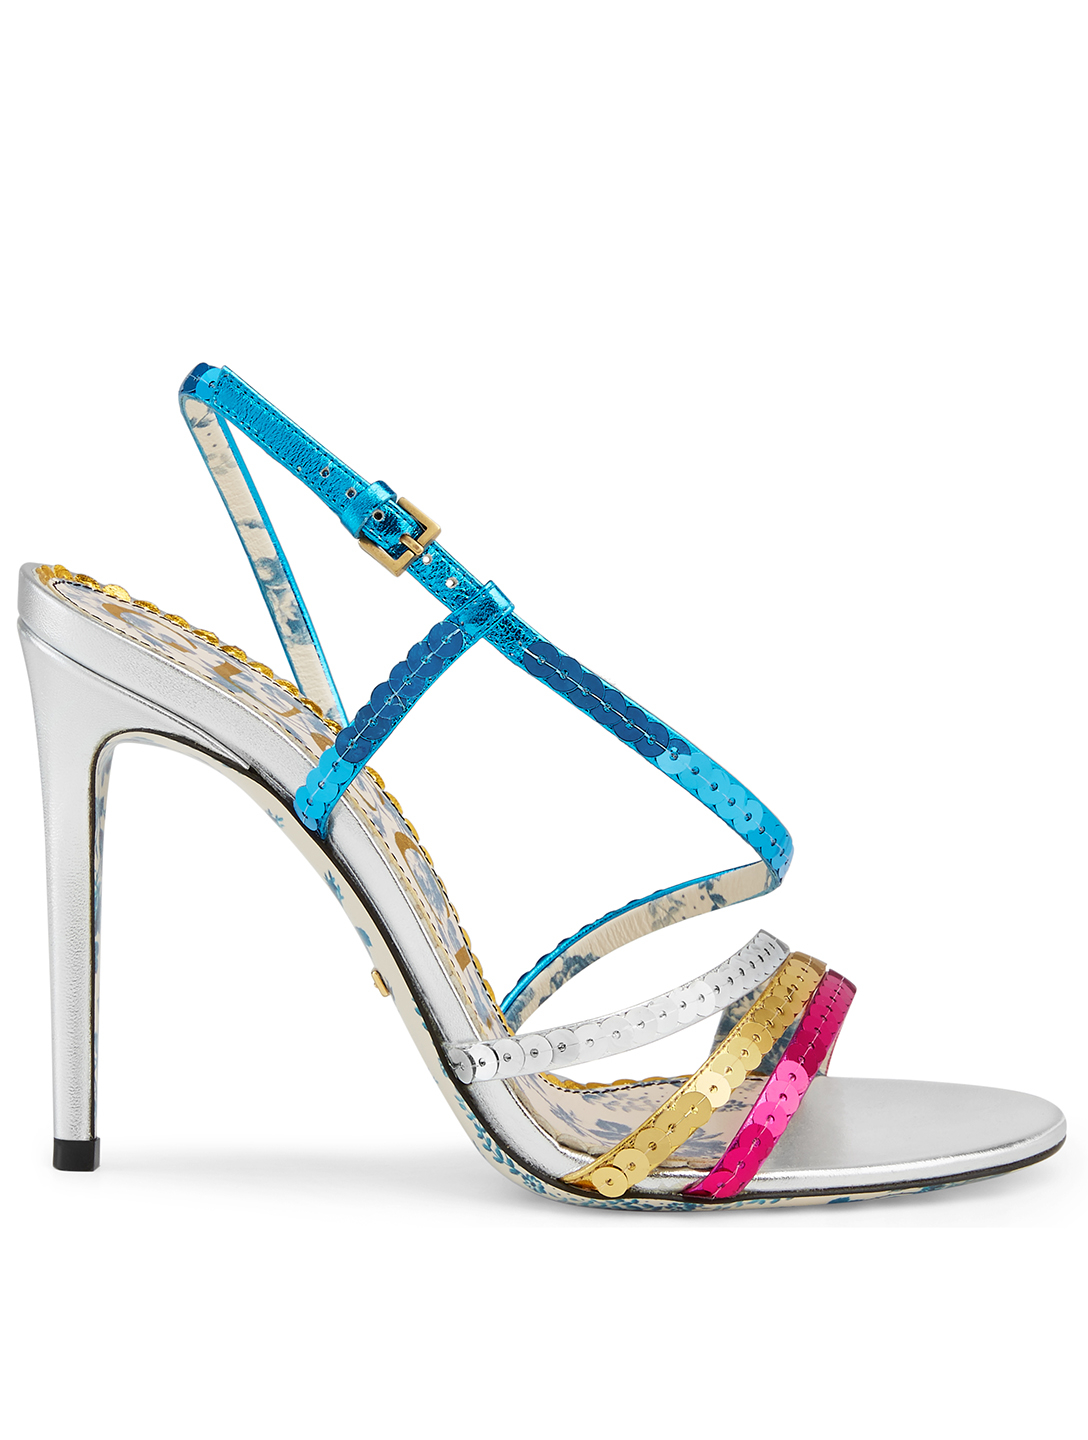 GUCCI Haines Metallic Leather Sandals With Sequins Women's Multi